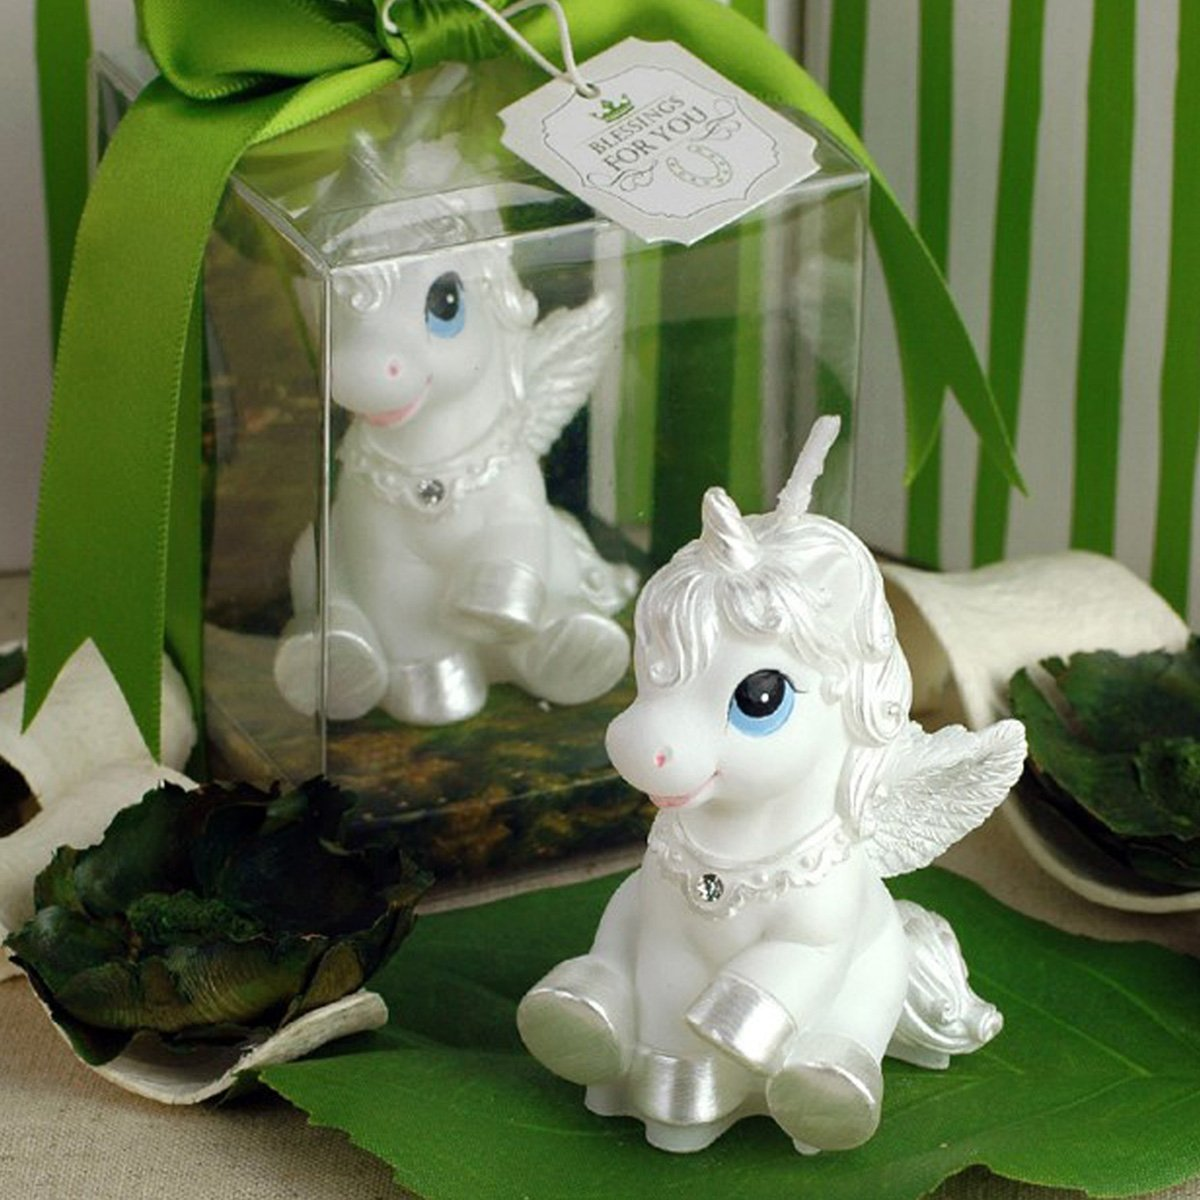 GranVela Creative Little Unicorn Pegasus Smokeless Candles for Birthday,Parties,Celebration and Home Decoration by Granvela